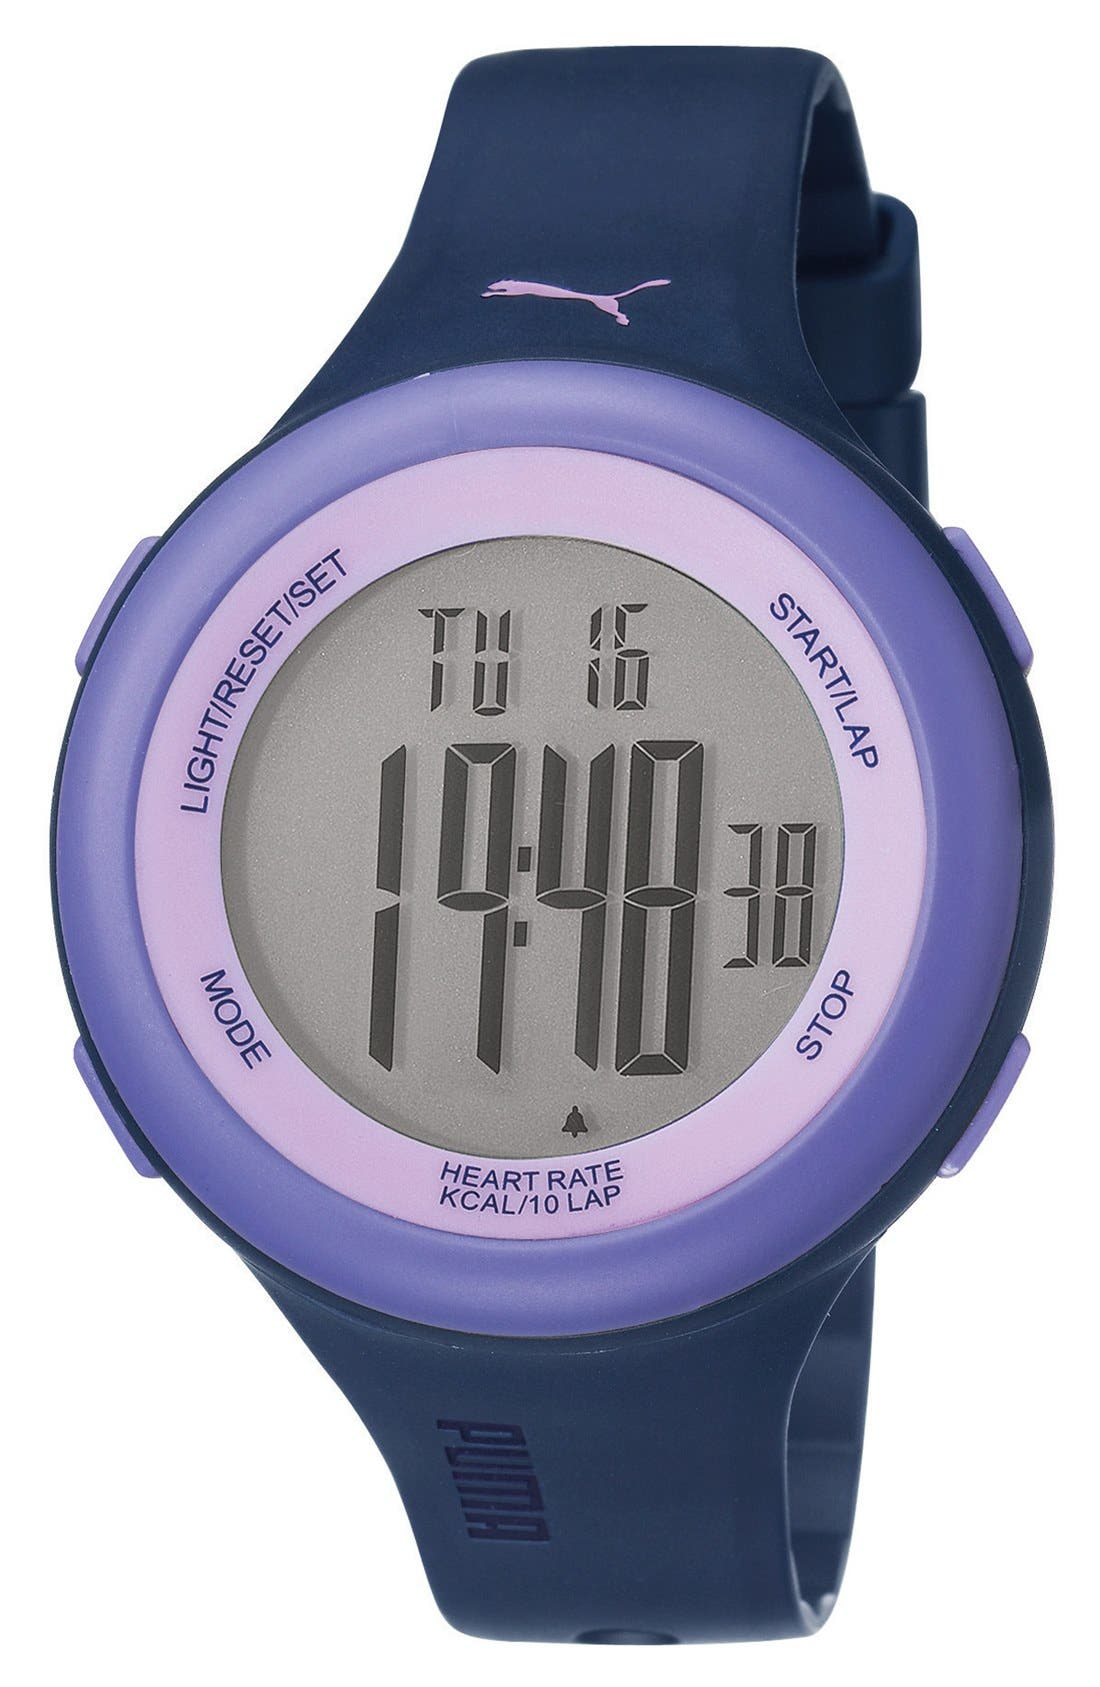 Alternate Image 1 Selected - PUMA 'Fit' Heart Rate Monitor Watch